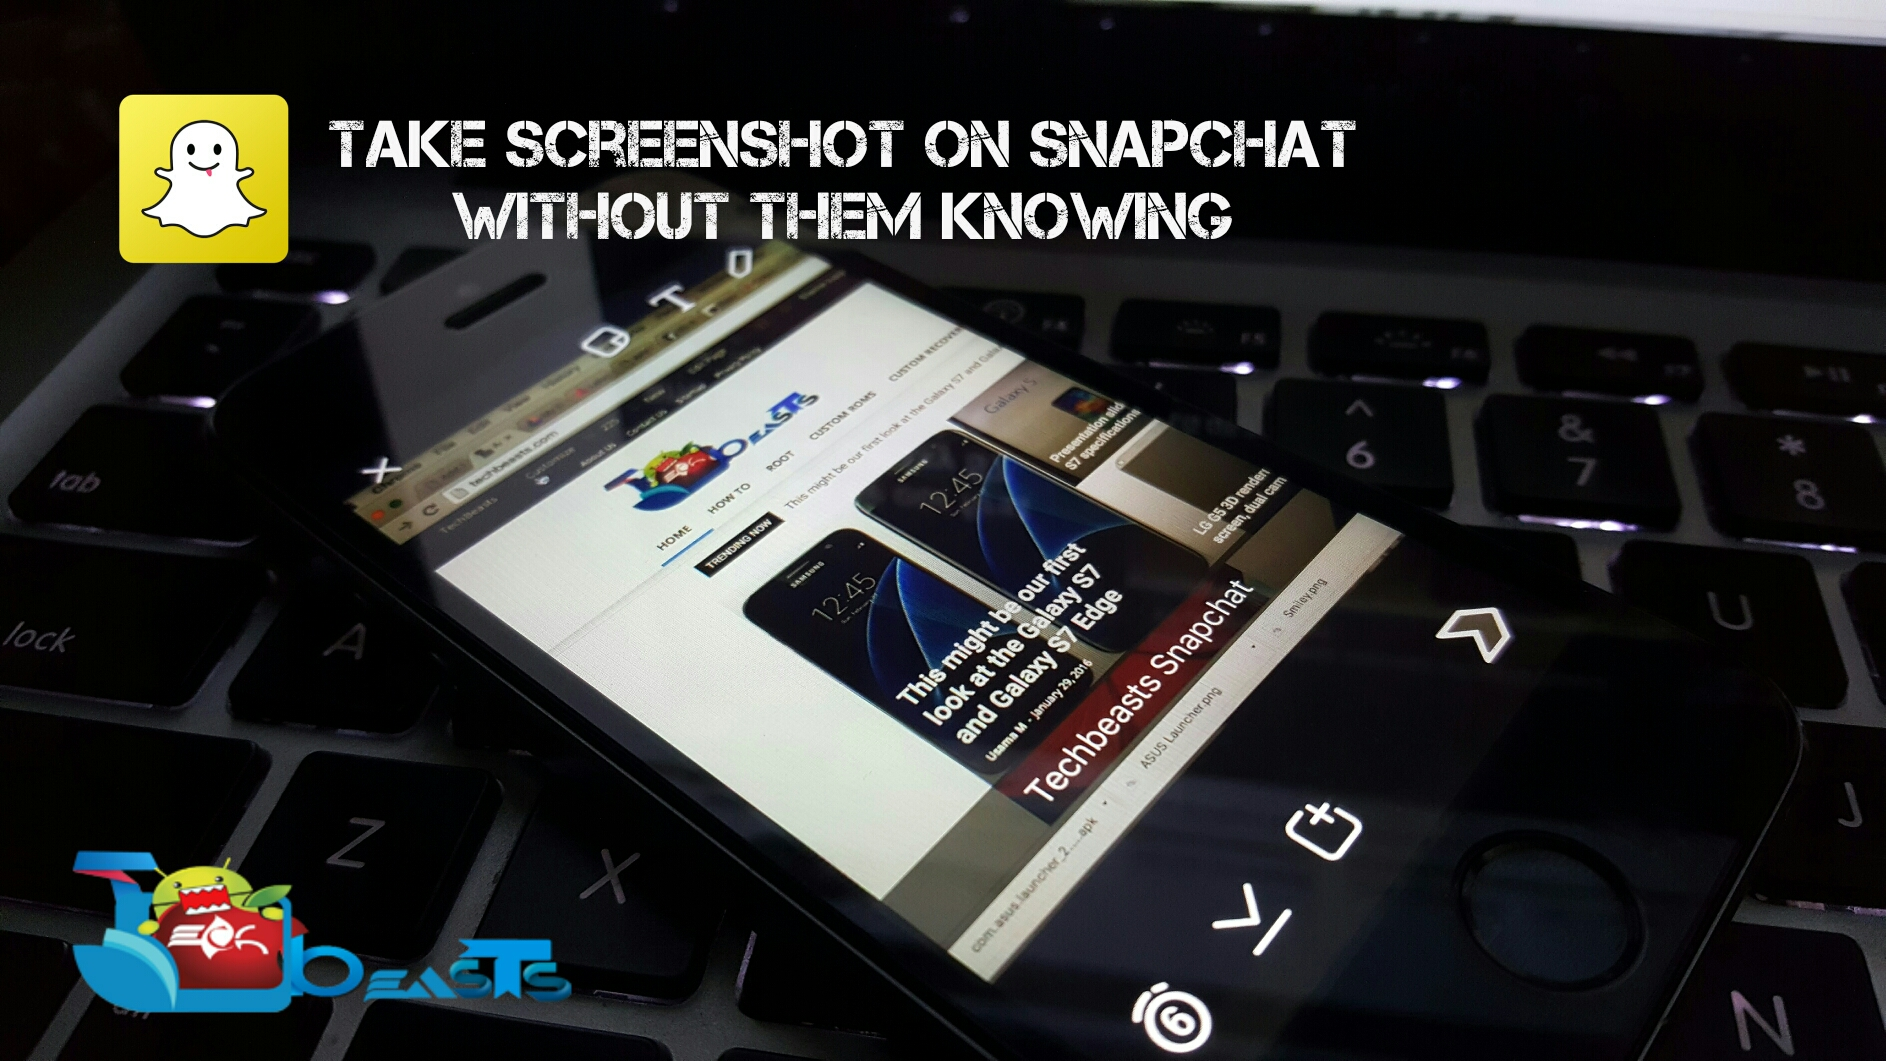 take screenshot on Snapchat without them knowing.